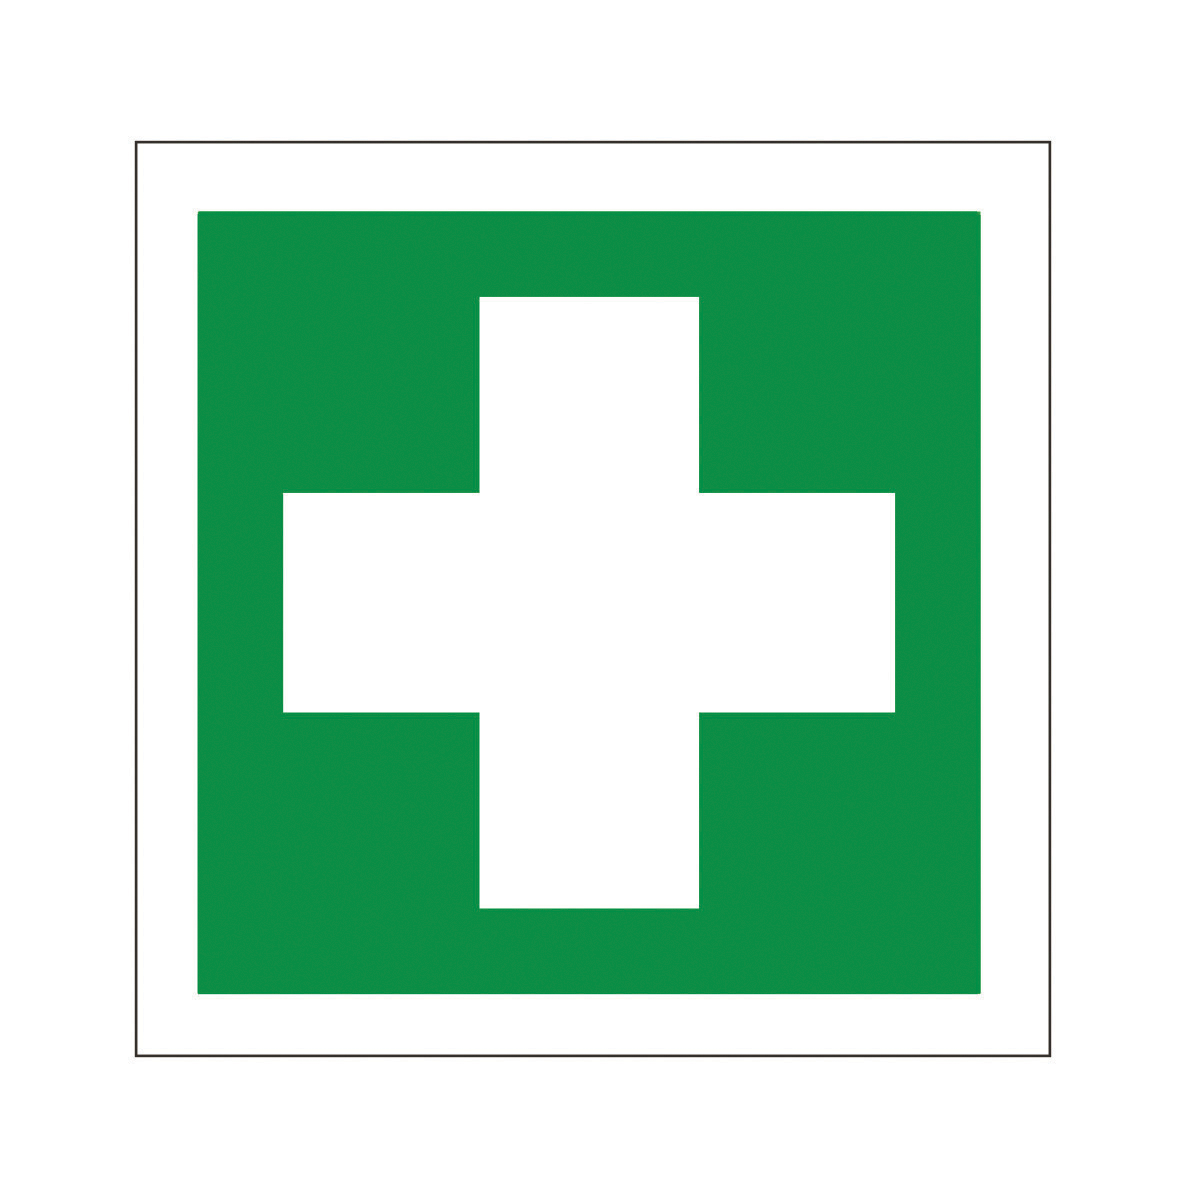 Symbols Of Health And Safety In The Workplace